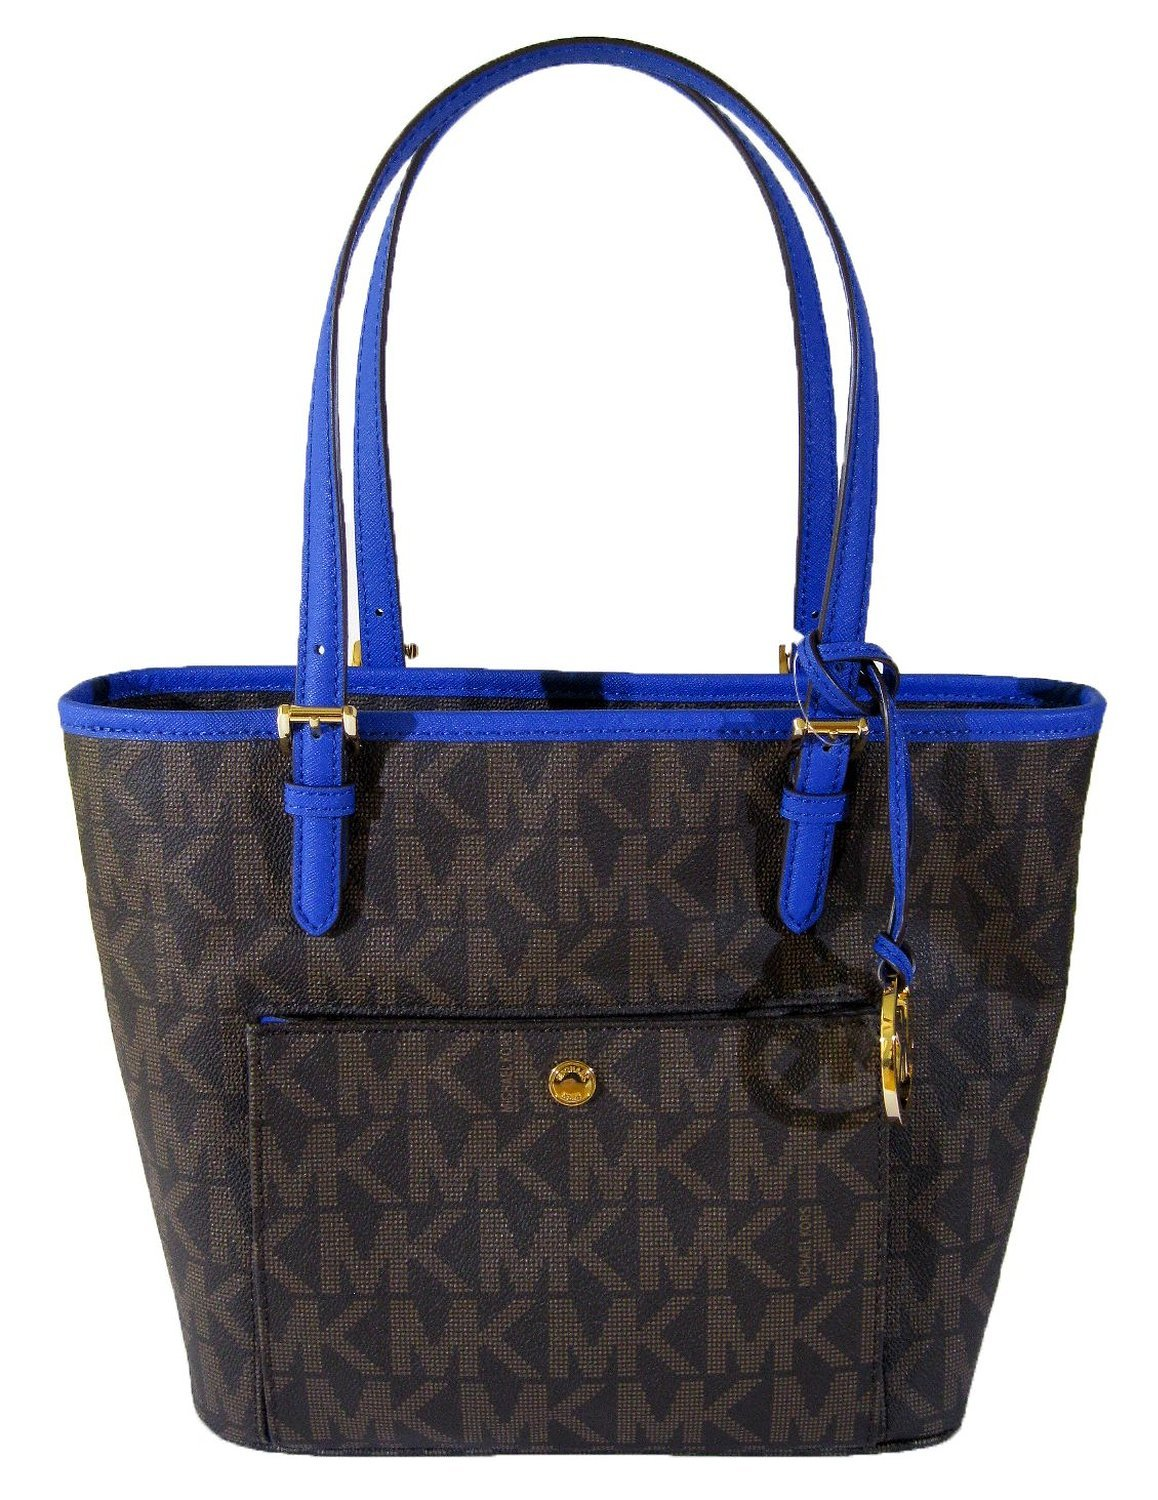 Michael Kors Jet Set Item Medium Snap Pocket Tote, Brown/elecblue